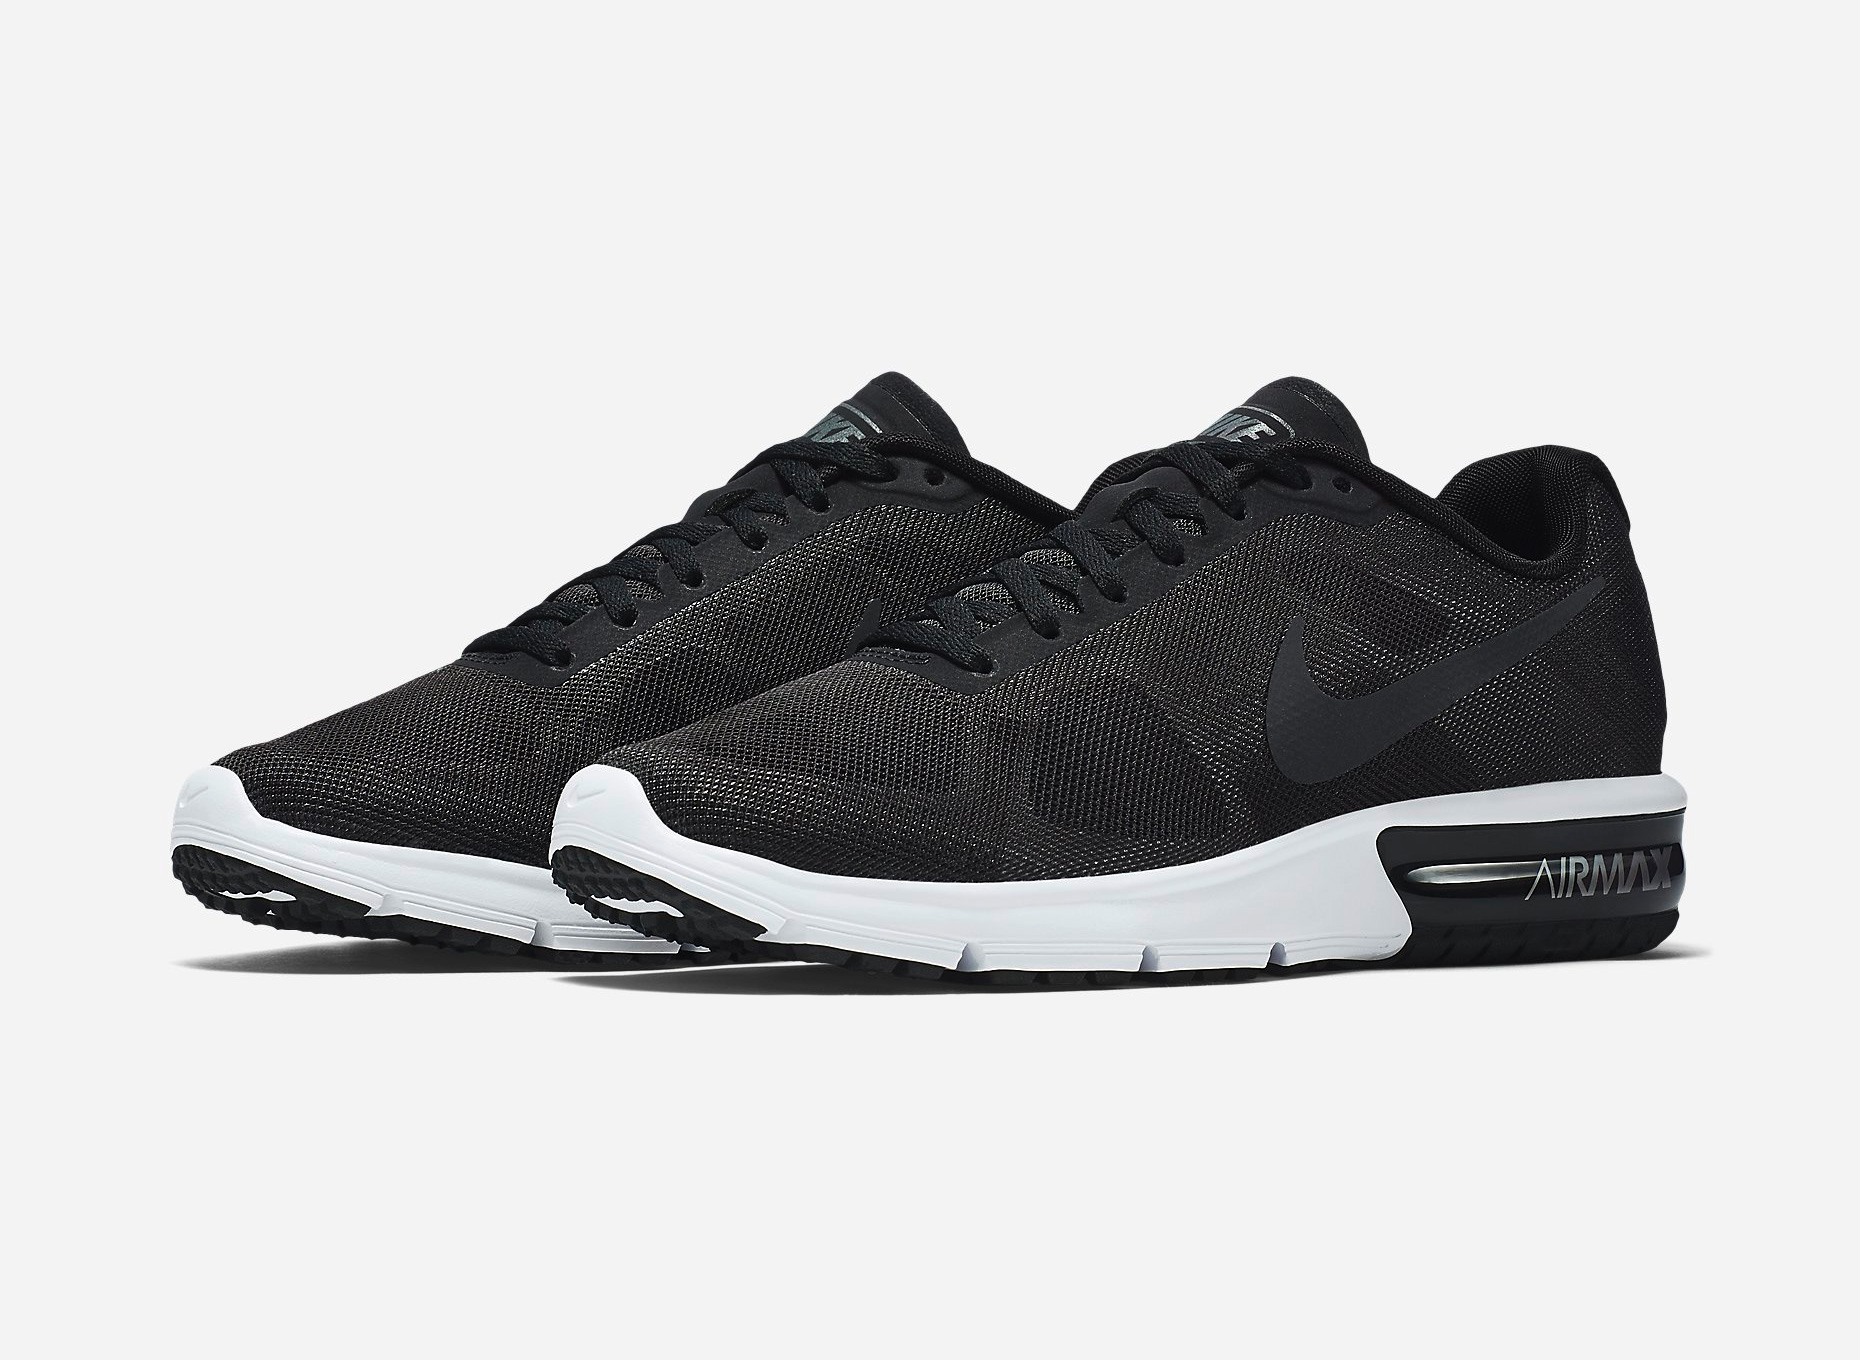 719916-008-Nike-Air-Max-Sequent-Black-White-03